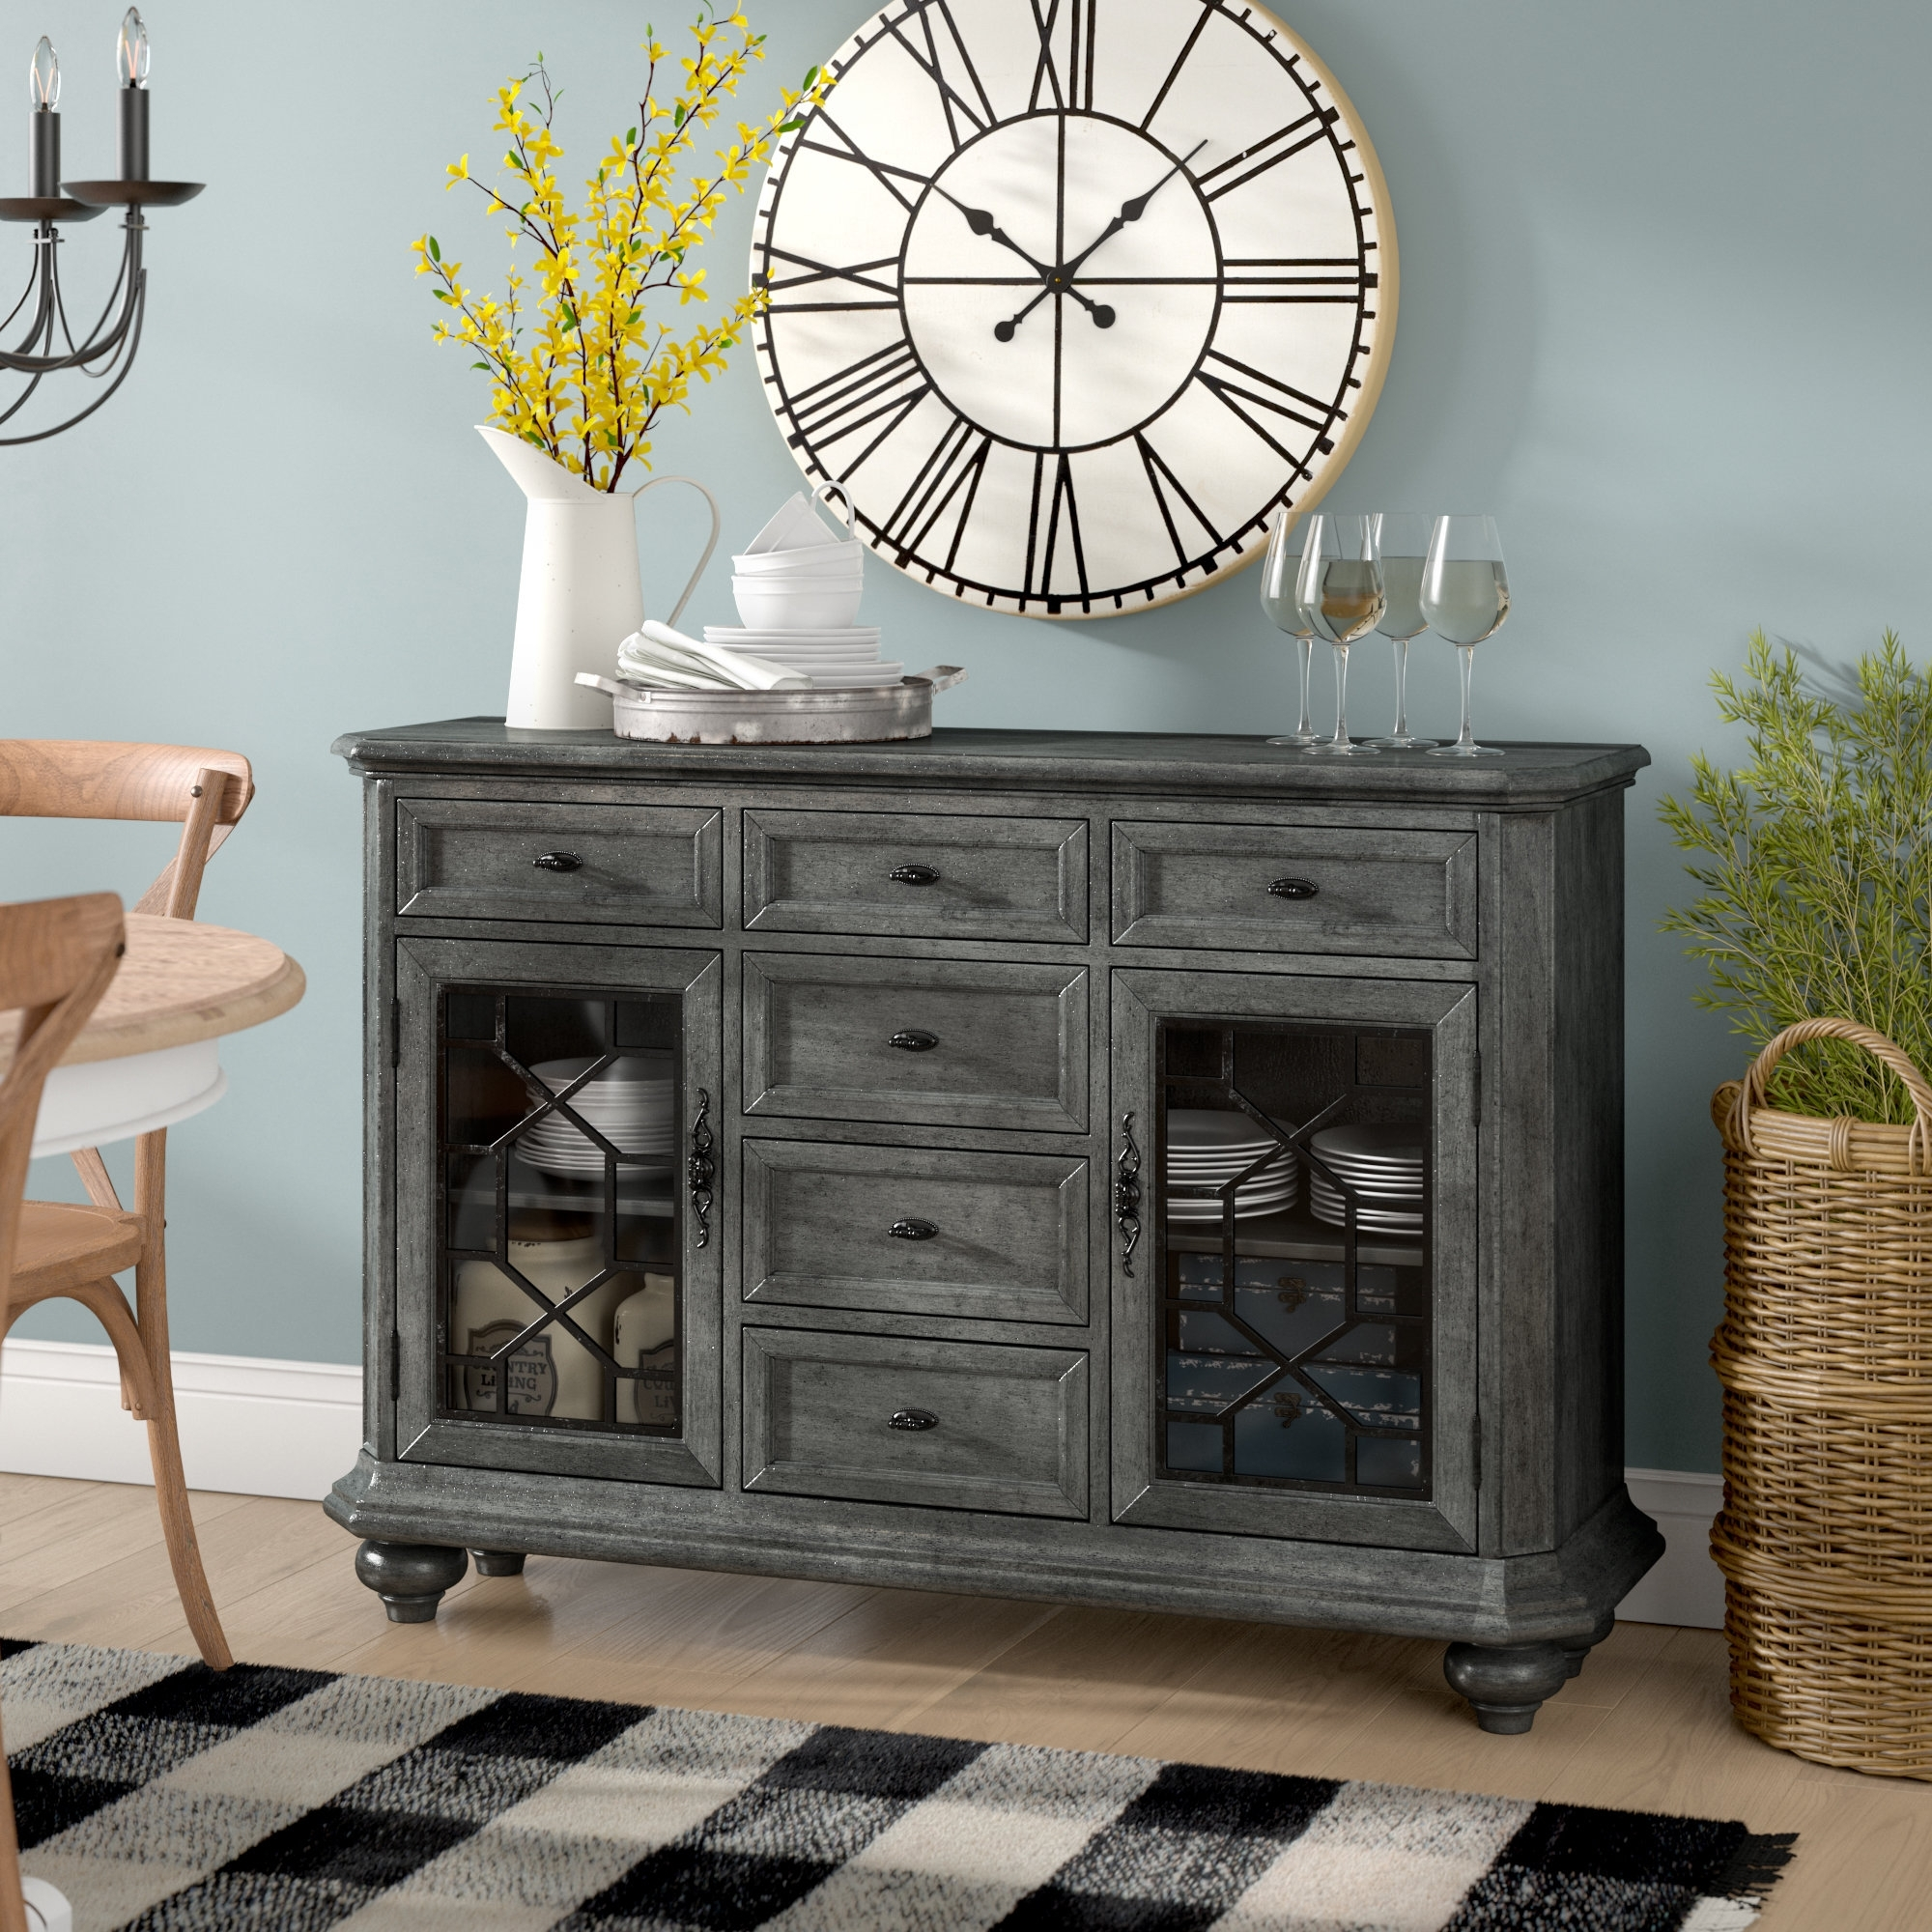 August Grove Concetta Sideboard & Reviews | Wayfair regarding Iron Pine Sideboards (Image 3 of 30)